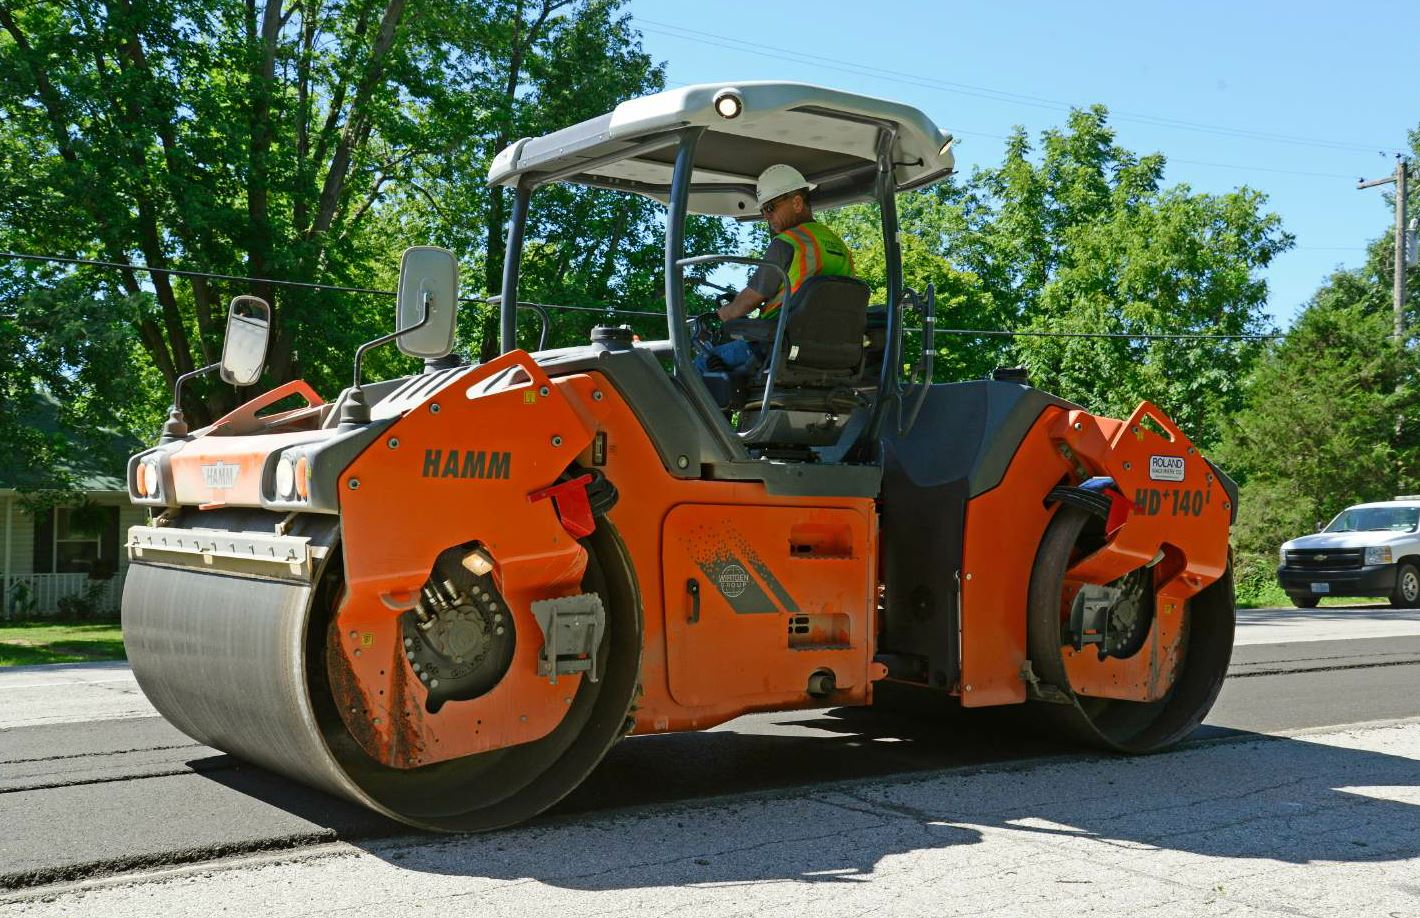 The Hamm HD+ 140i VV served in the breakdown position.